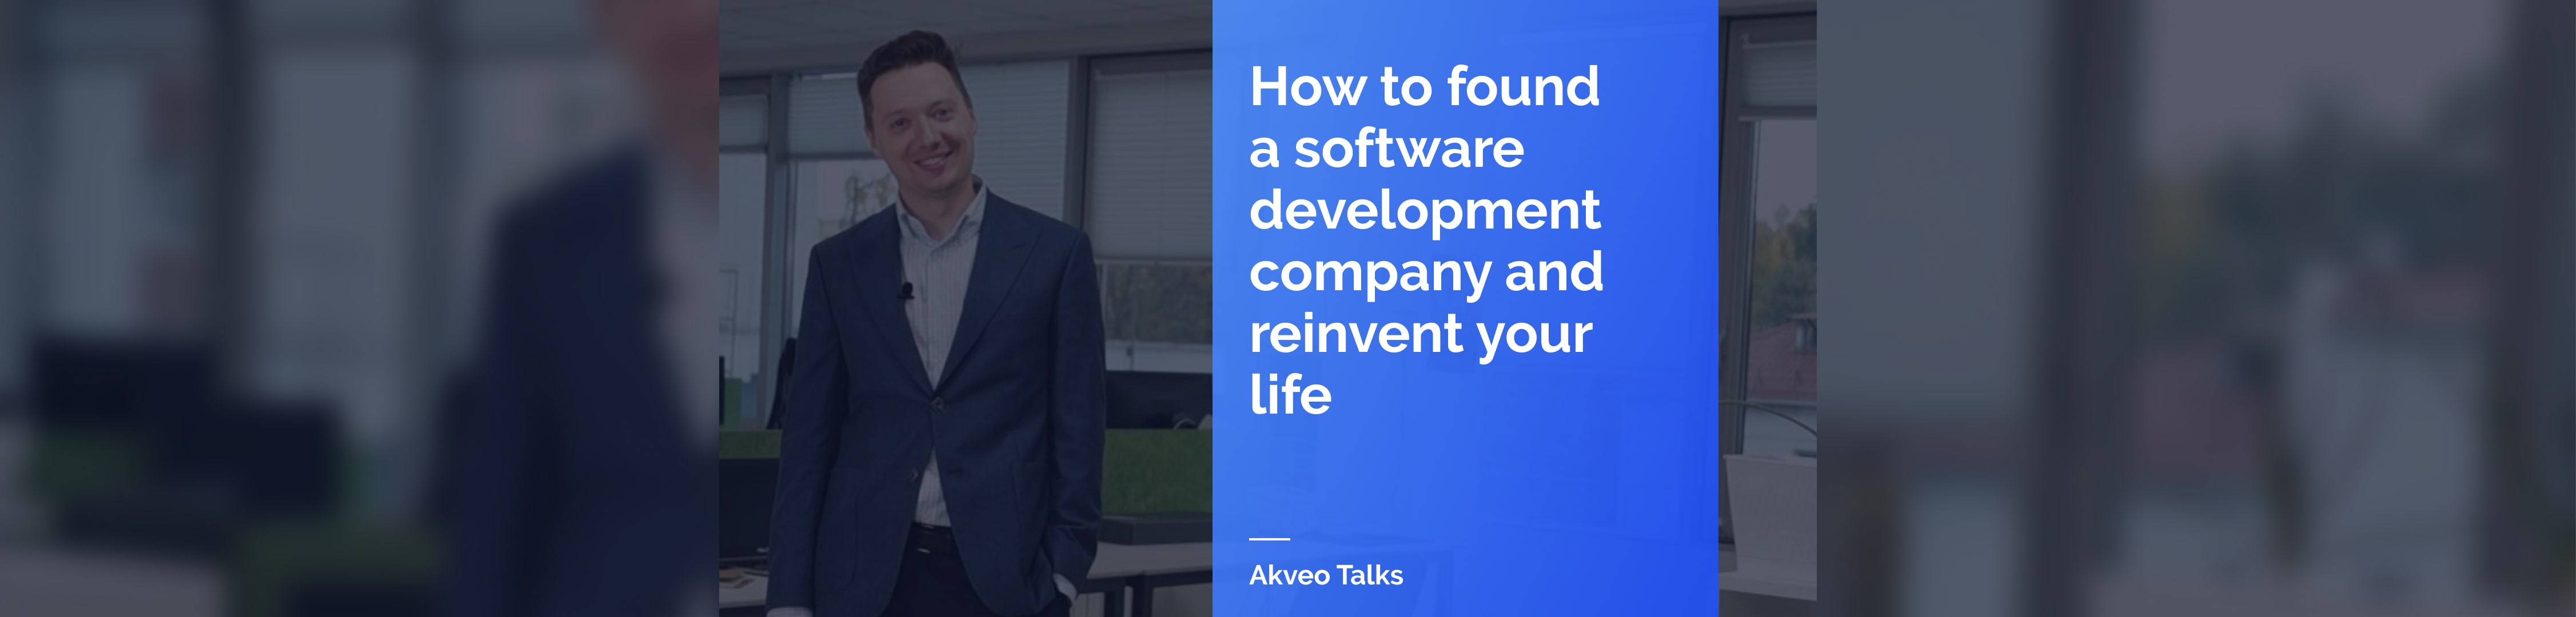 Akveo Talks: how to found a software development company and reinvent your life